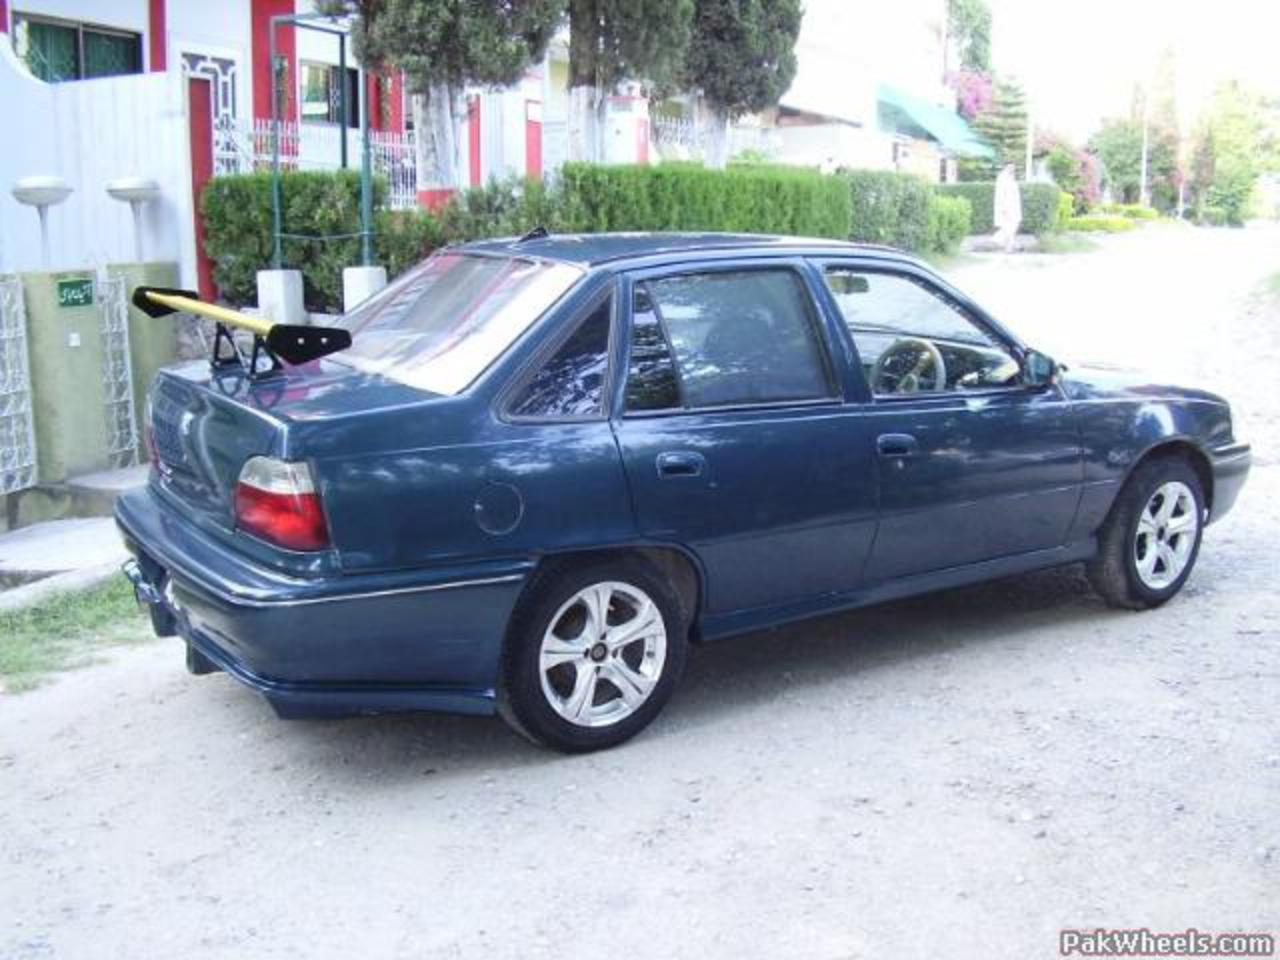 Topworldauto Photos Of Daewoo Cielo Photo Galleries 1997 Workshop Manual With 15 Dohc 16v Engine For Sale